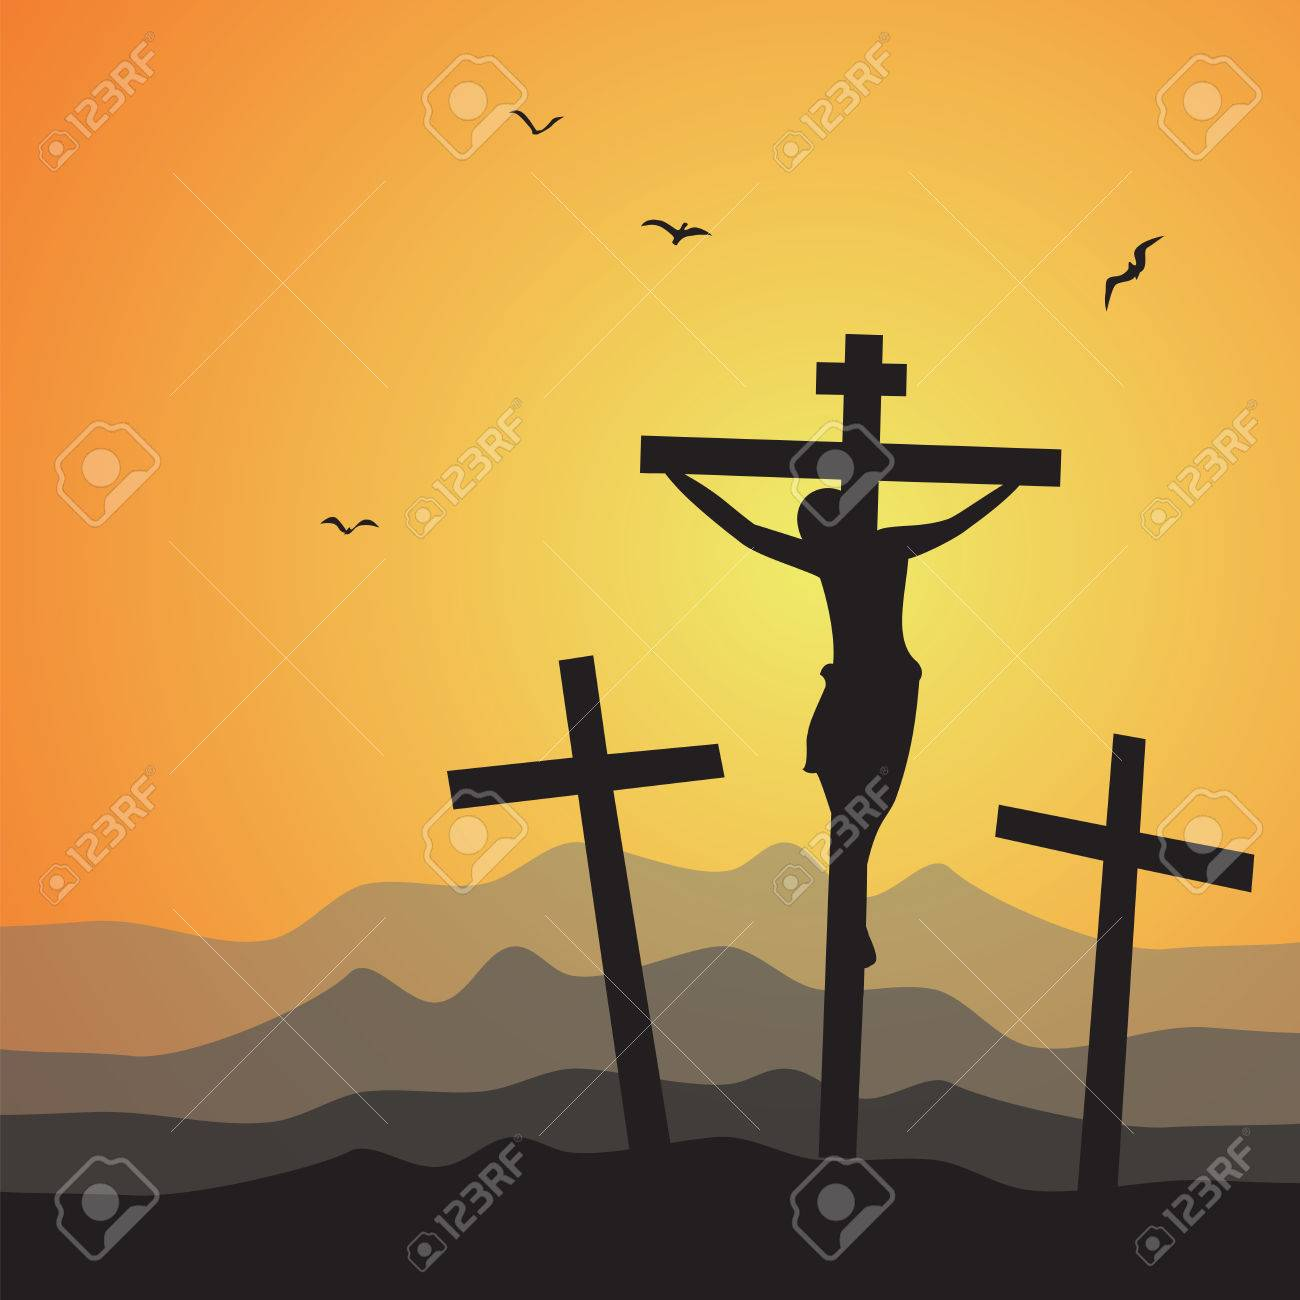 Crucifixion. Vector illustration of Jesus Christ's crucifixion..